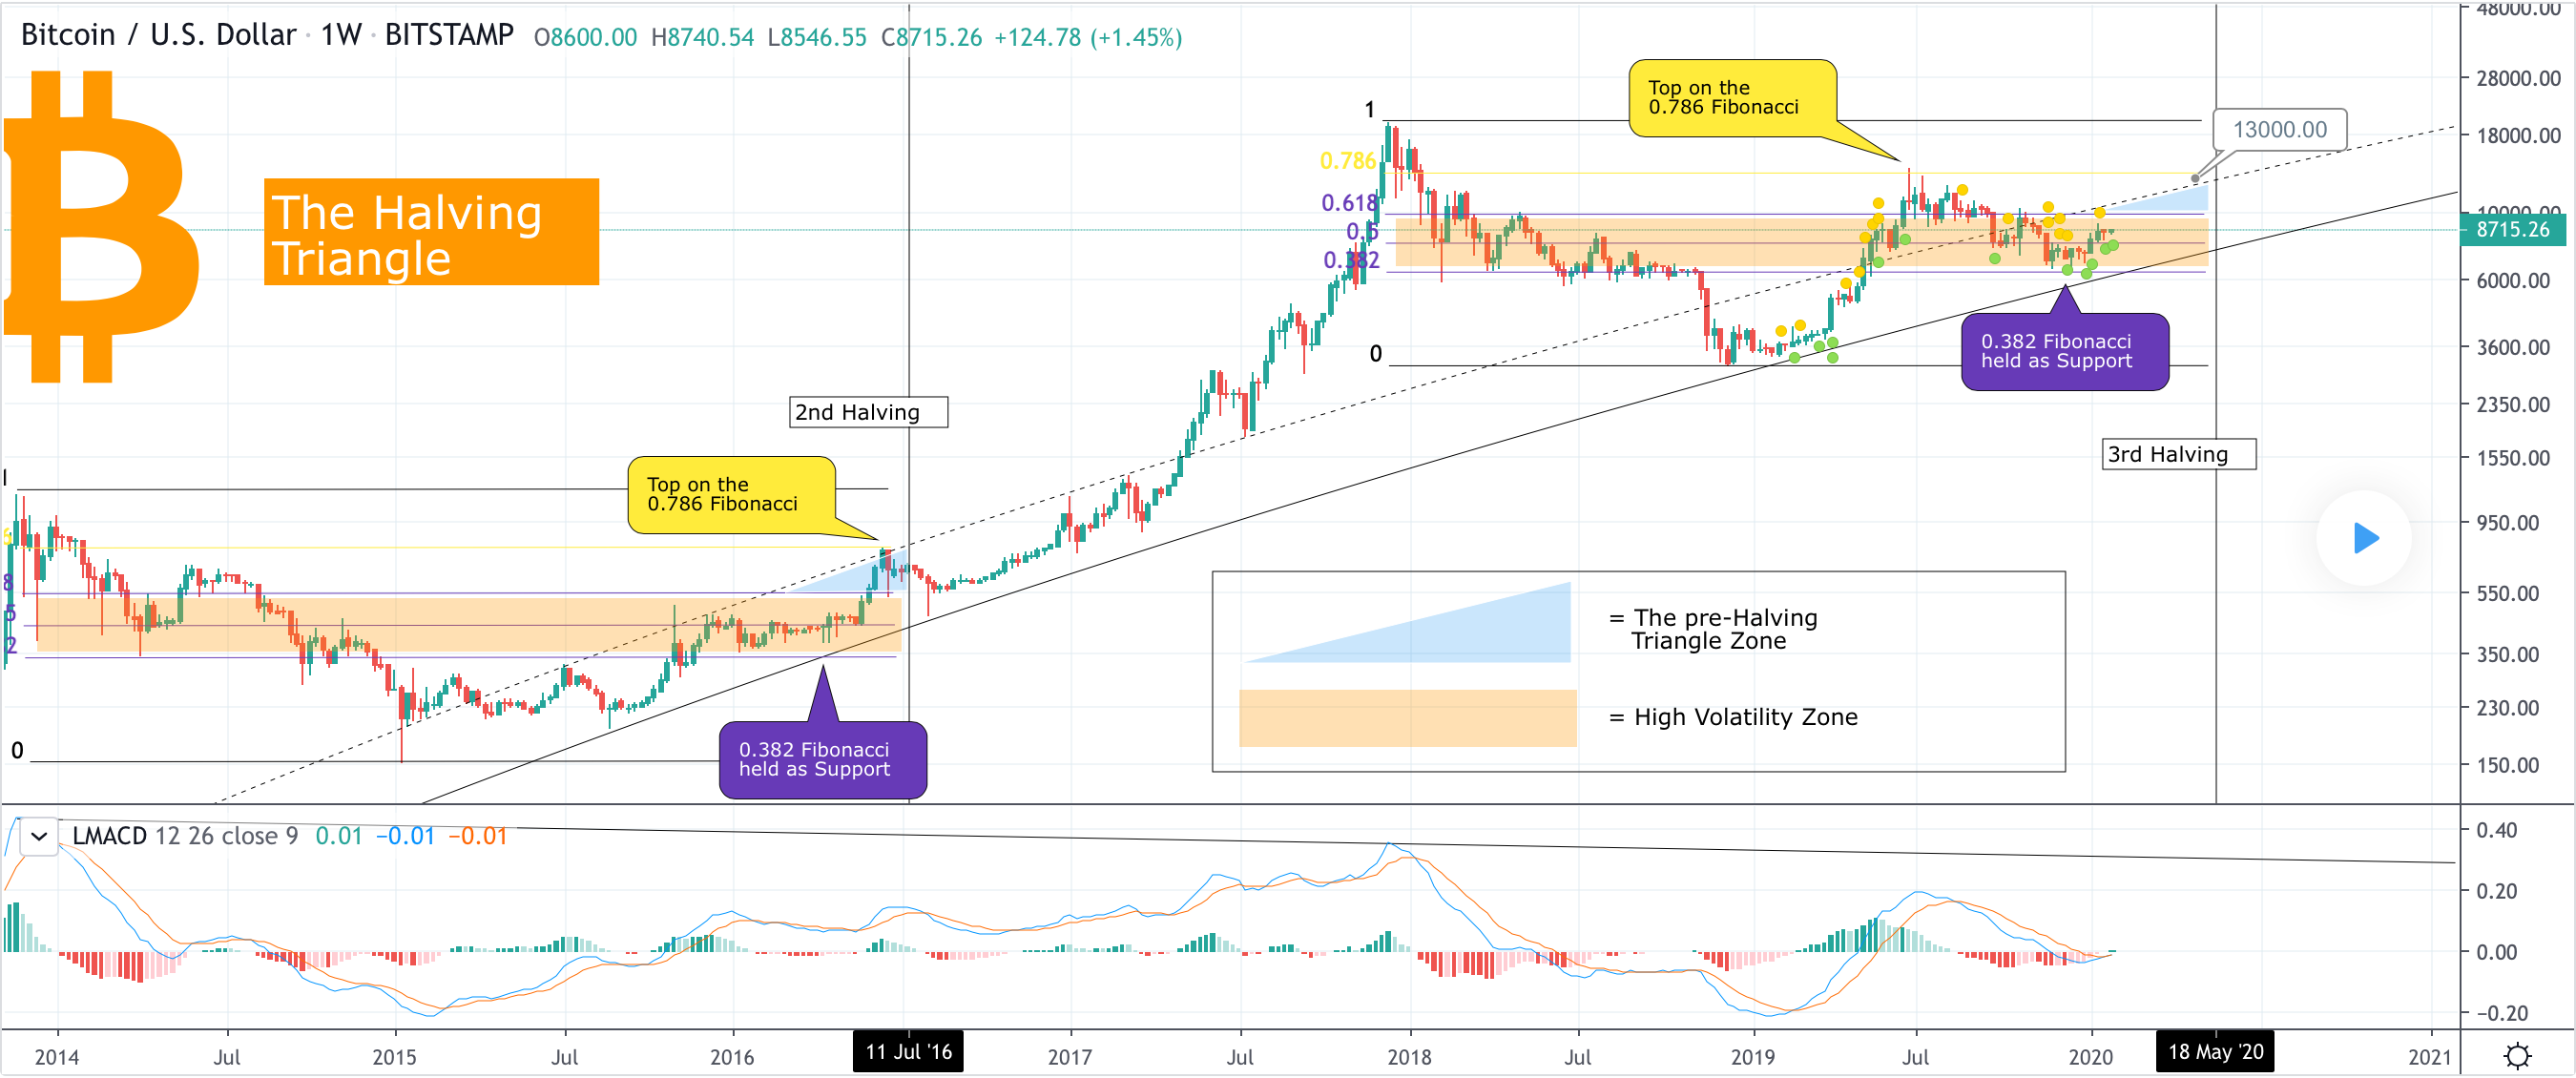 Bitcoin To Hit $13,000 Before May In Pre-Halving Rally?